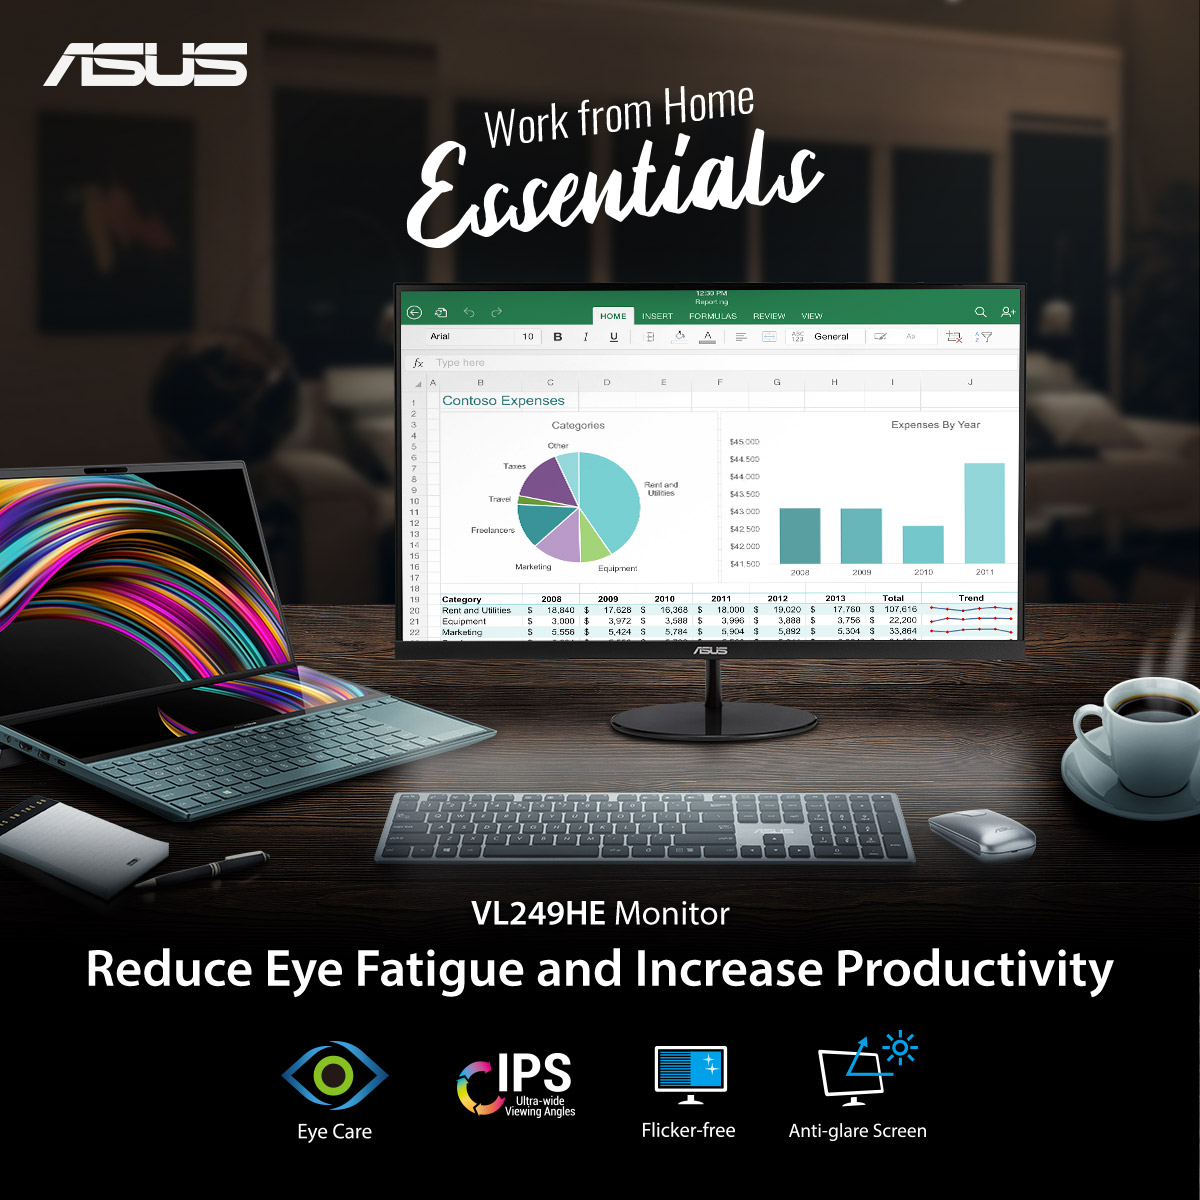 Keep your work from home tech set-up simple: a PC or laptop and a monitor that cares for your eyes. #WorkFromHome #WFH #SafeAtHome  Choose your Eye Care Monitor here: https://t.co/0dgdnSfdXC https://t.co/C2CGg0oAN6